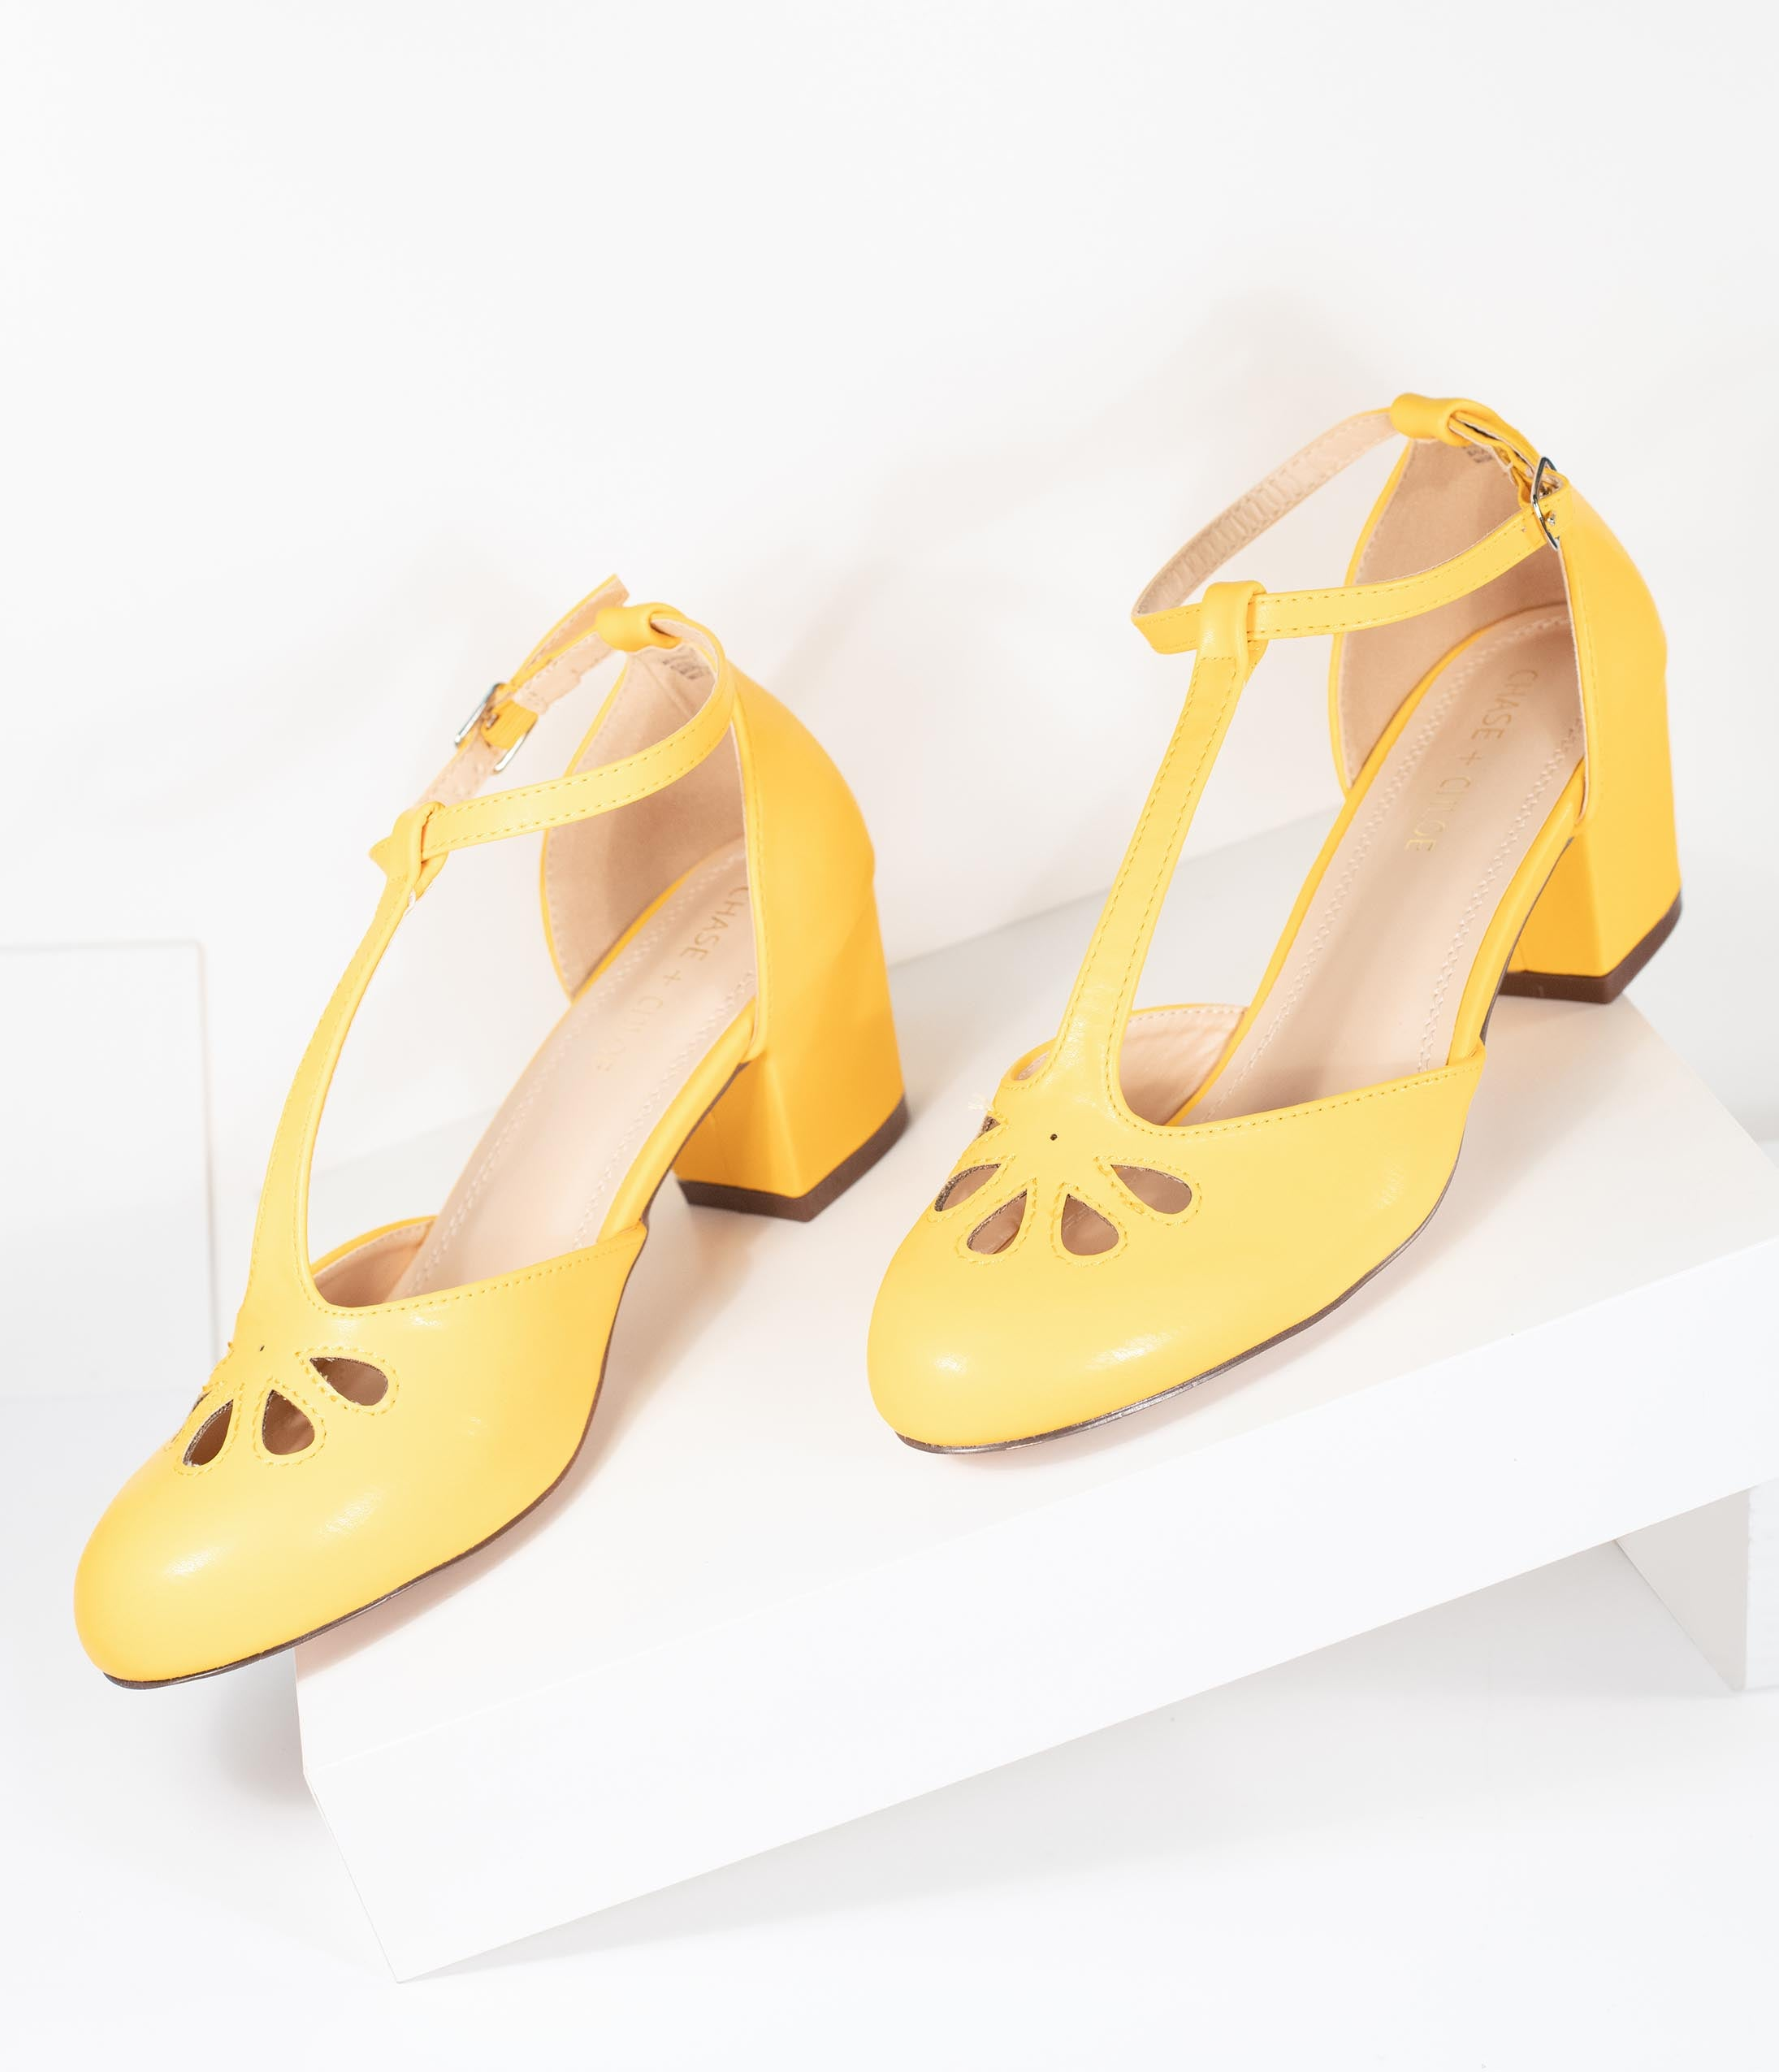 Retro Vintage Flats and Low Heel Shoes Yellow Leatherette Minny T-Strap Heels $48.00 AT vintagedancer.com